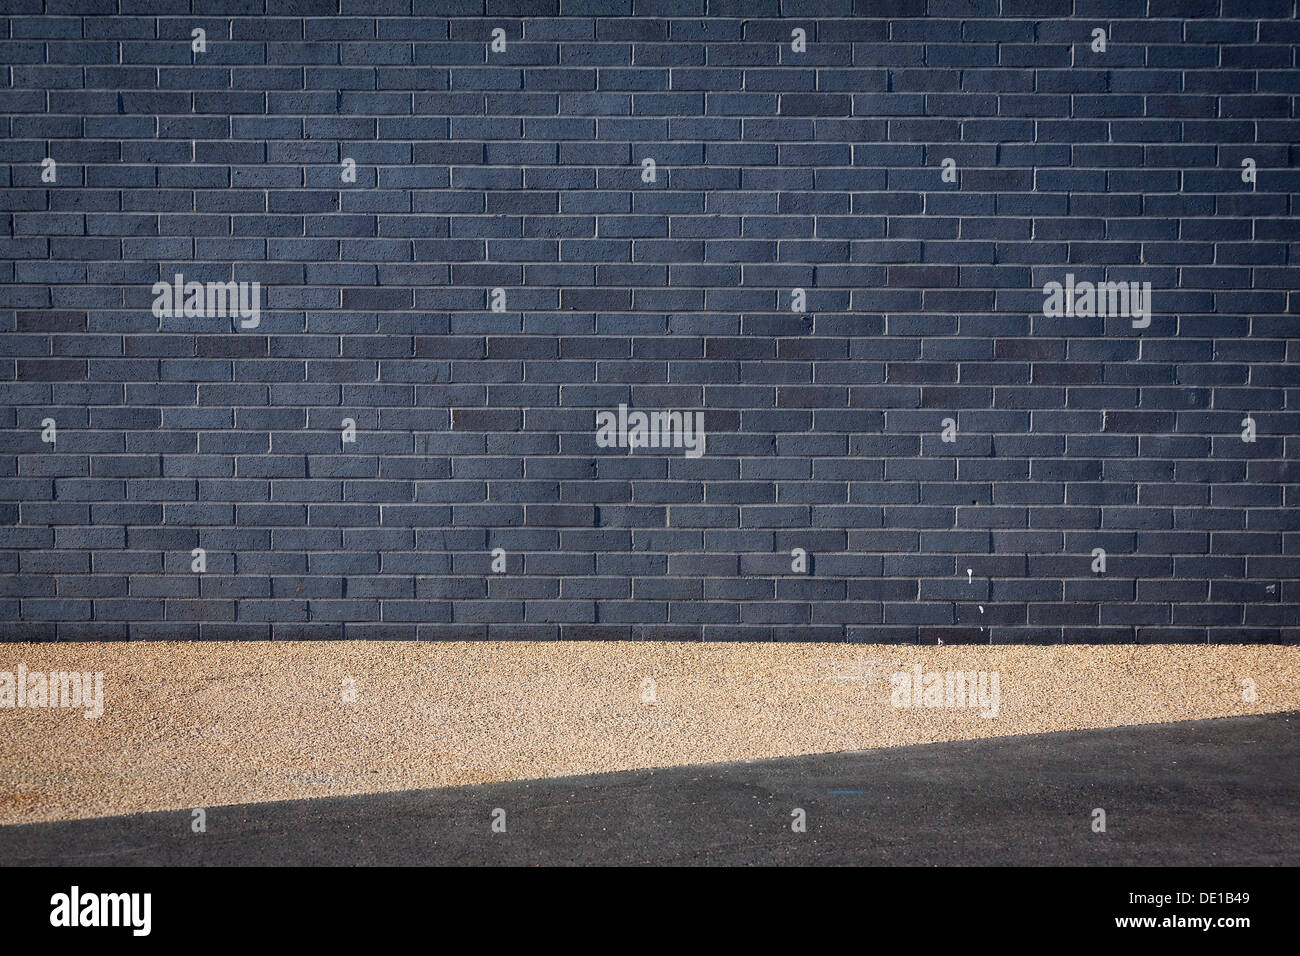 Detail of the wall of the Olympic Copper Box, at the Queen Elizabeth Olympic Park, London, Landscape WP. - Stock Image